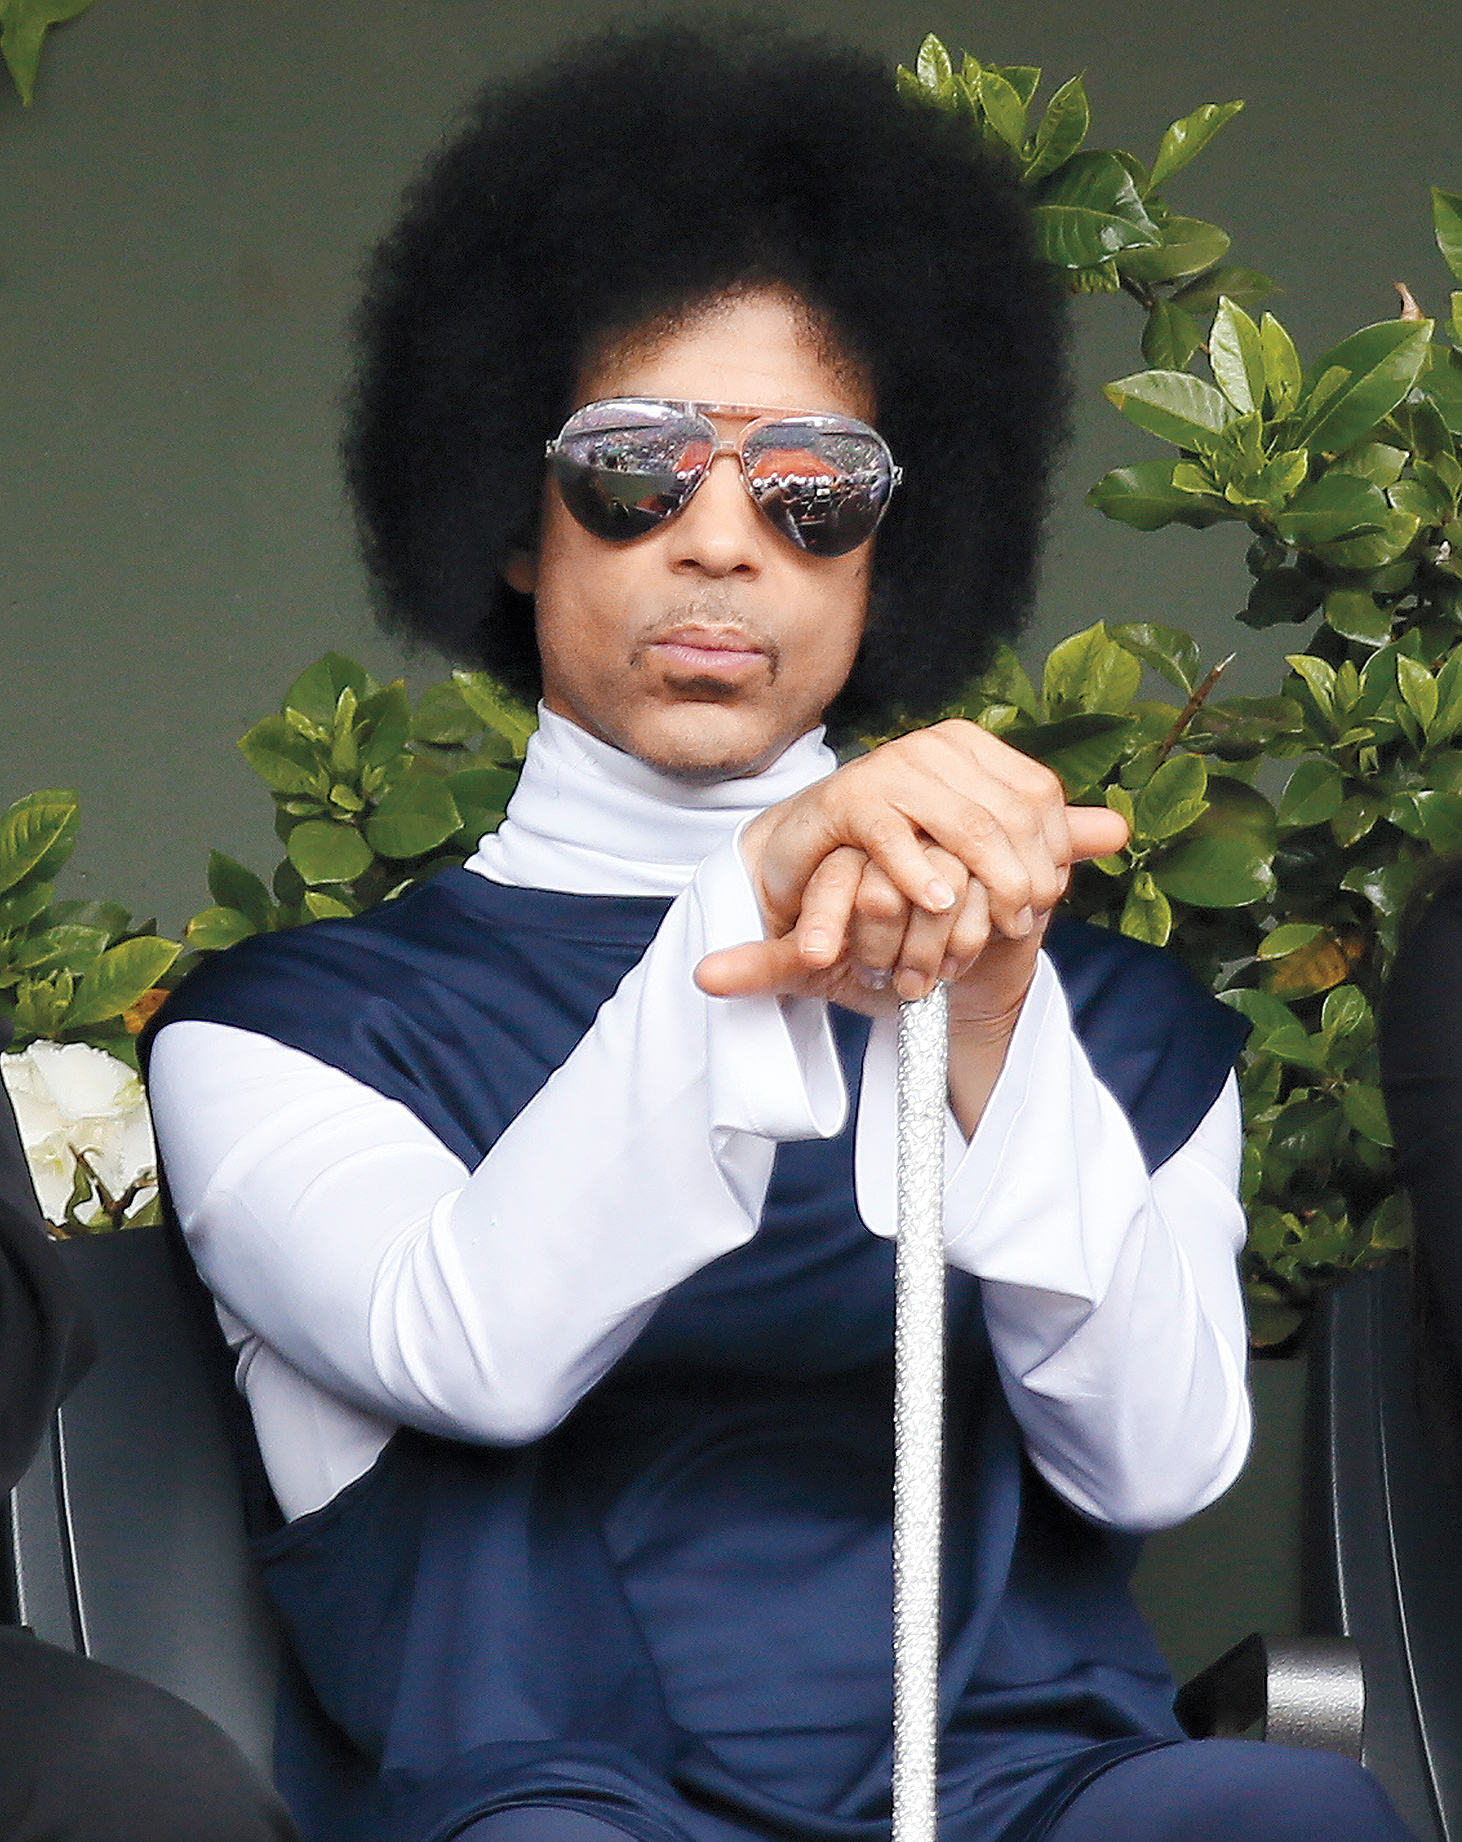 e94a59c9c A Final Visit With Prince  Rolling Stone s Lost Cover Story ...